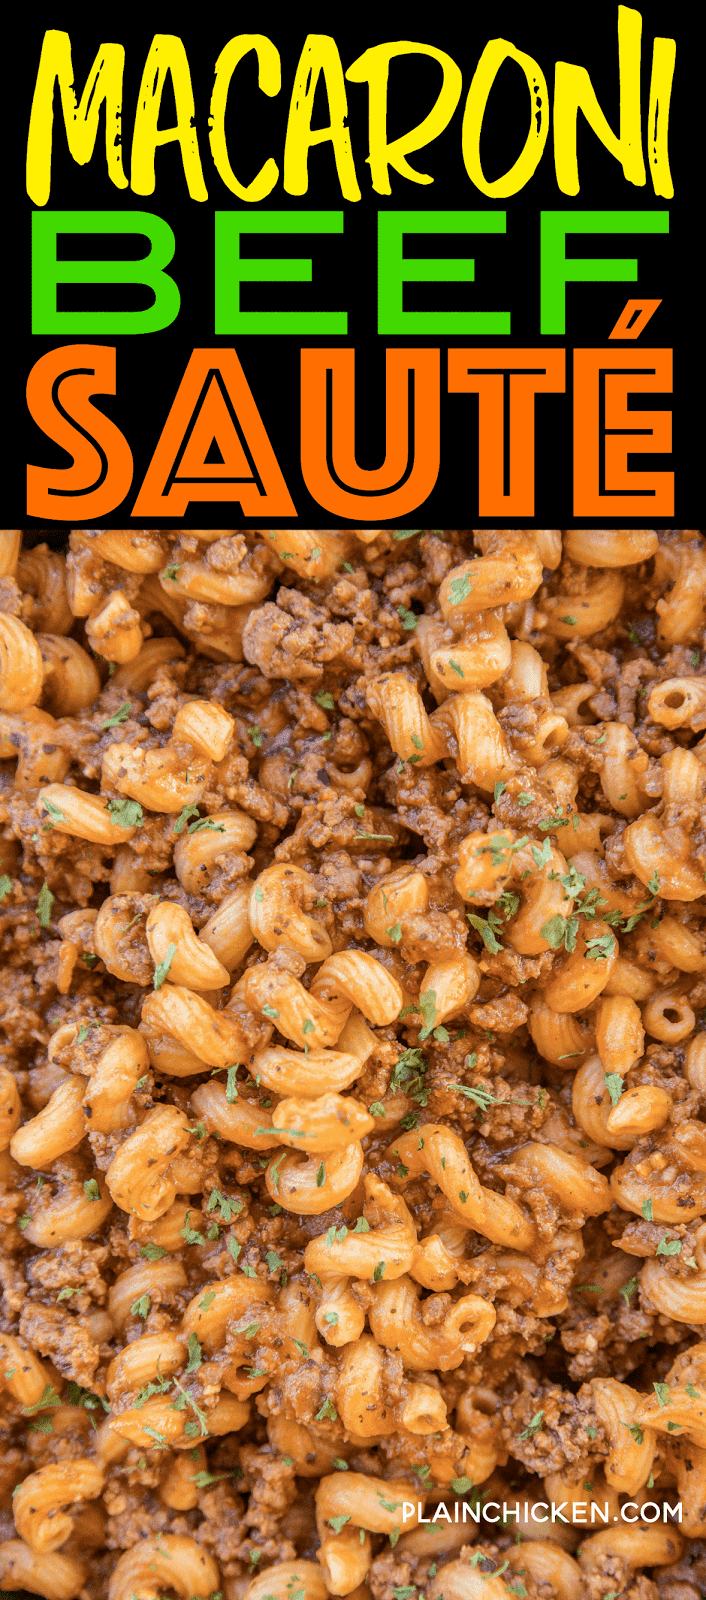 Macaroni Beef Sauté - everything cooks in the same skillet. Ready in 20 minutes! Ground beef, macaroni, onion, garlic, basil, Italian seasoning, red pepper, Worcestershire sauce and tomato juice. A quick and easy weeknight meal that the whole family enjoys!!! #onepotmeal #easydinner #kidfriendlydinner #beef